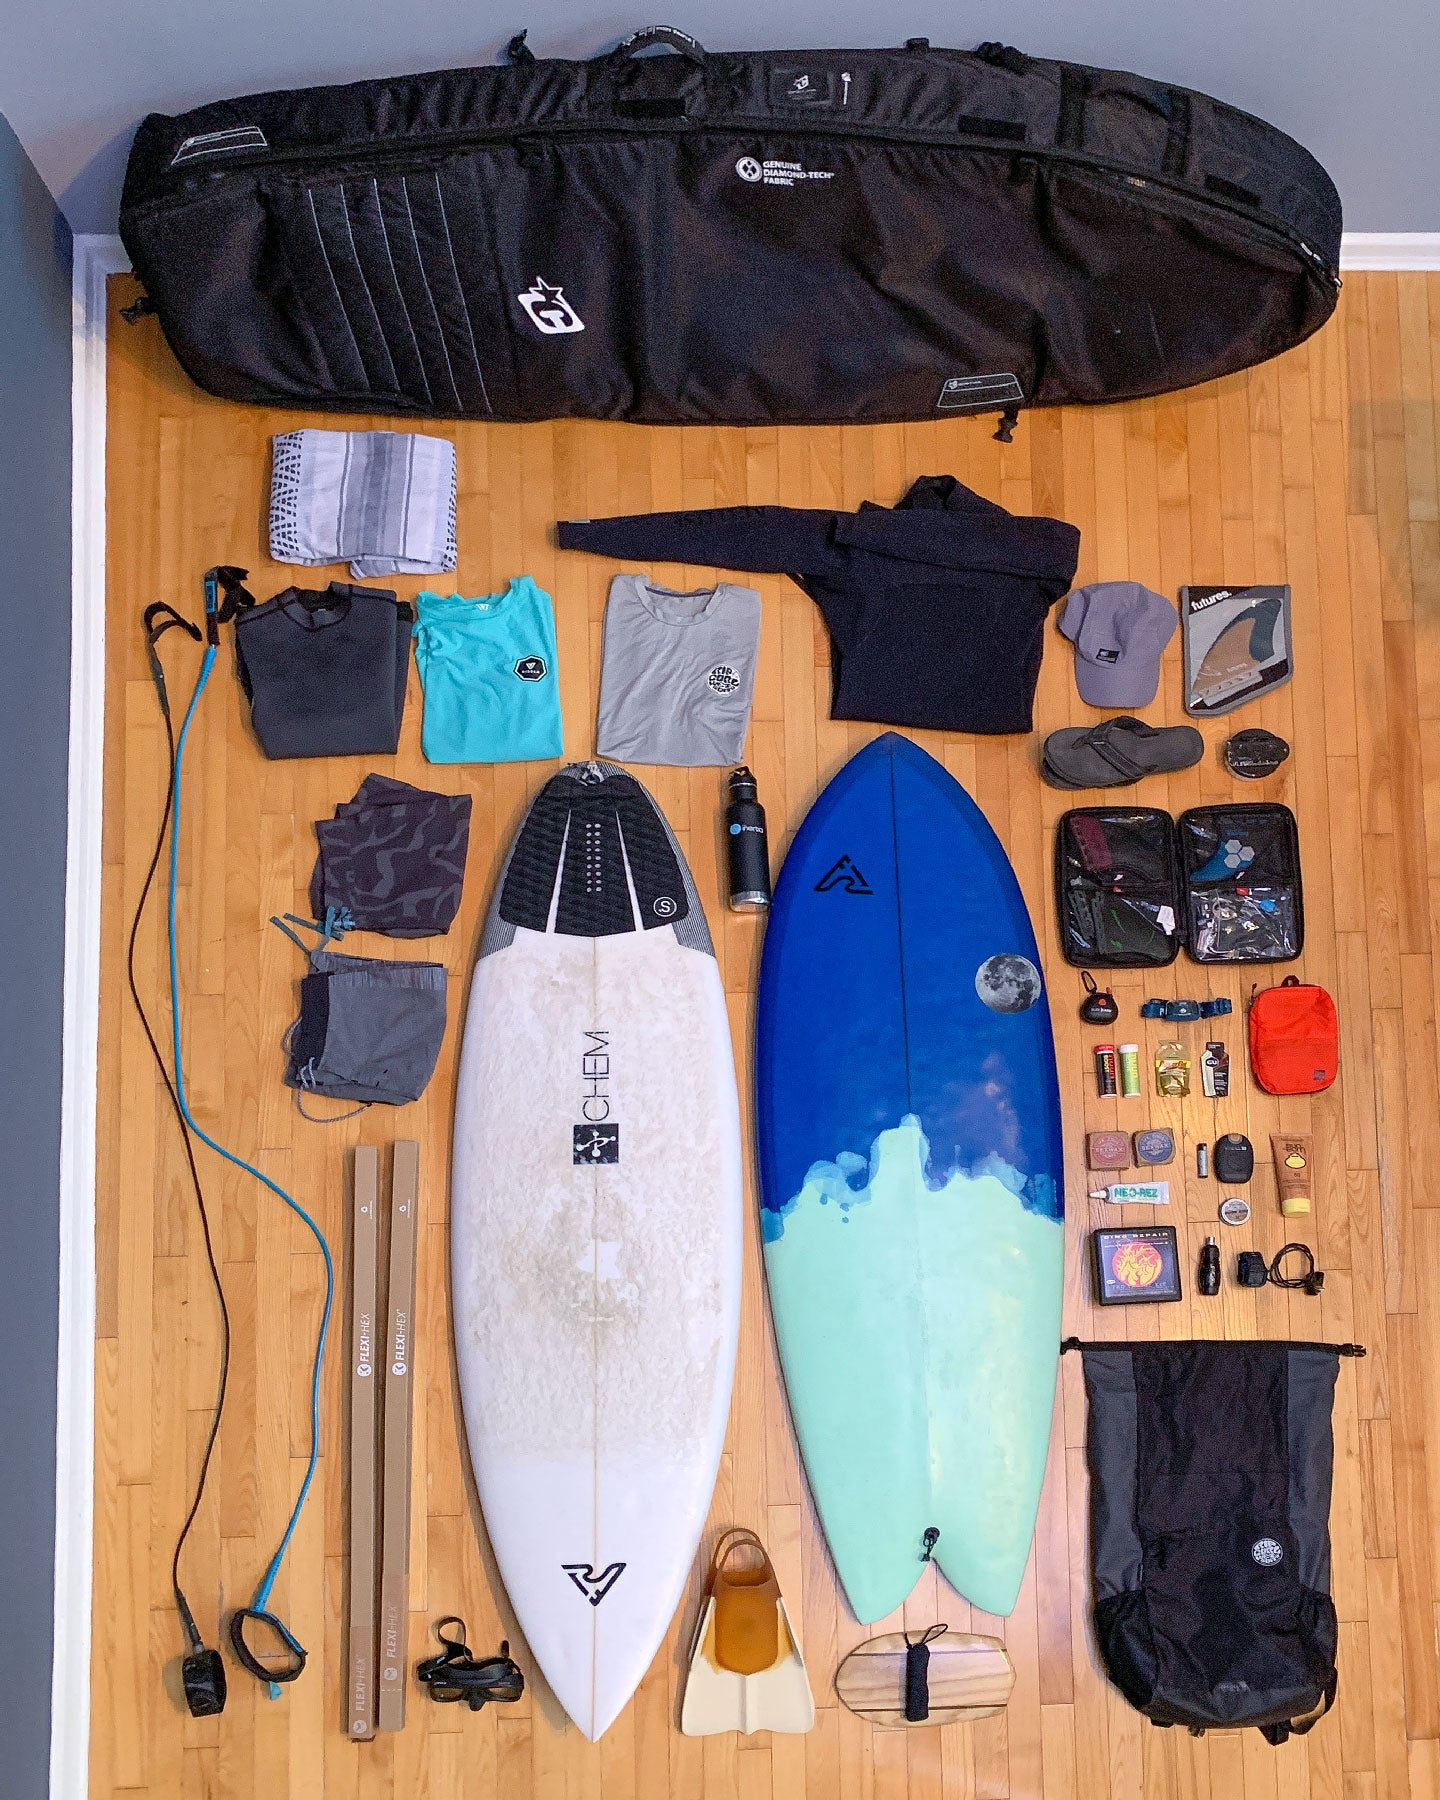 How to pack your surfboard bag for a surf trip